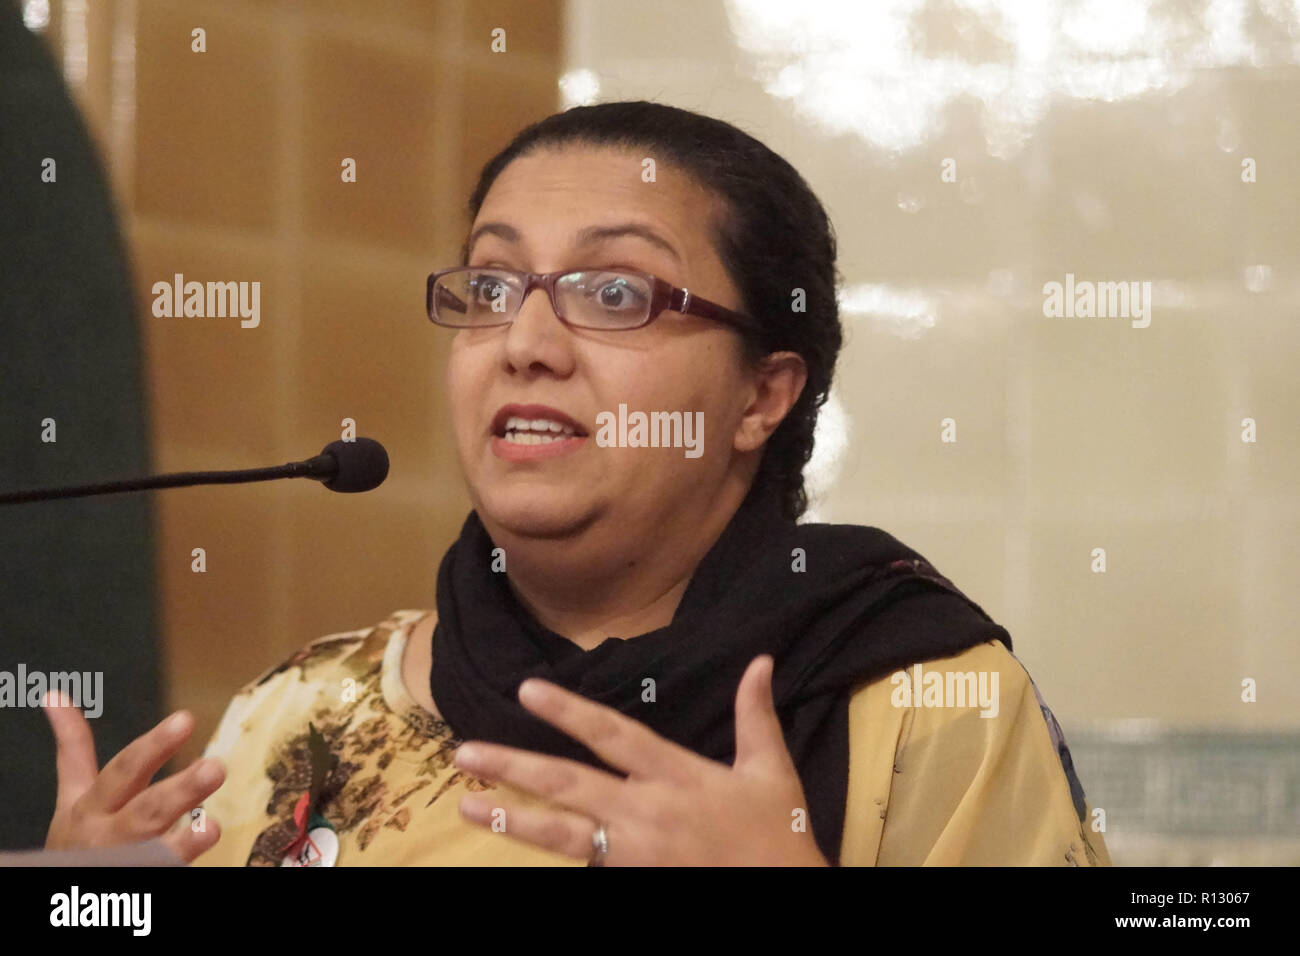 London, UK. 08 November 2018. London, England. Hina Bokhari at Lib Dems hold GLA 2020 hustings in the David Lloyd George Room at the National Liberal Club. Reetendra Nath Banerji, Rob Blackie, Caroline Pidgeon, Charley Hasted, Irina Von Wiese, Chris Maines, Hina Bokhari and Joyce Onstad all addressed Liberal Democrat Party members with an view to selection as candidates for the Greater London Assembly election of 2020. © Peter Hogan/Alamy Live News - Stock Image